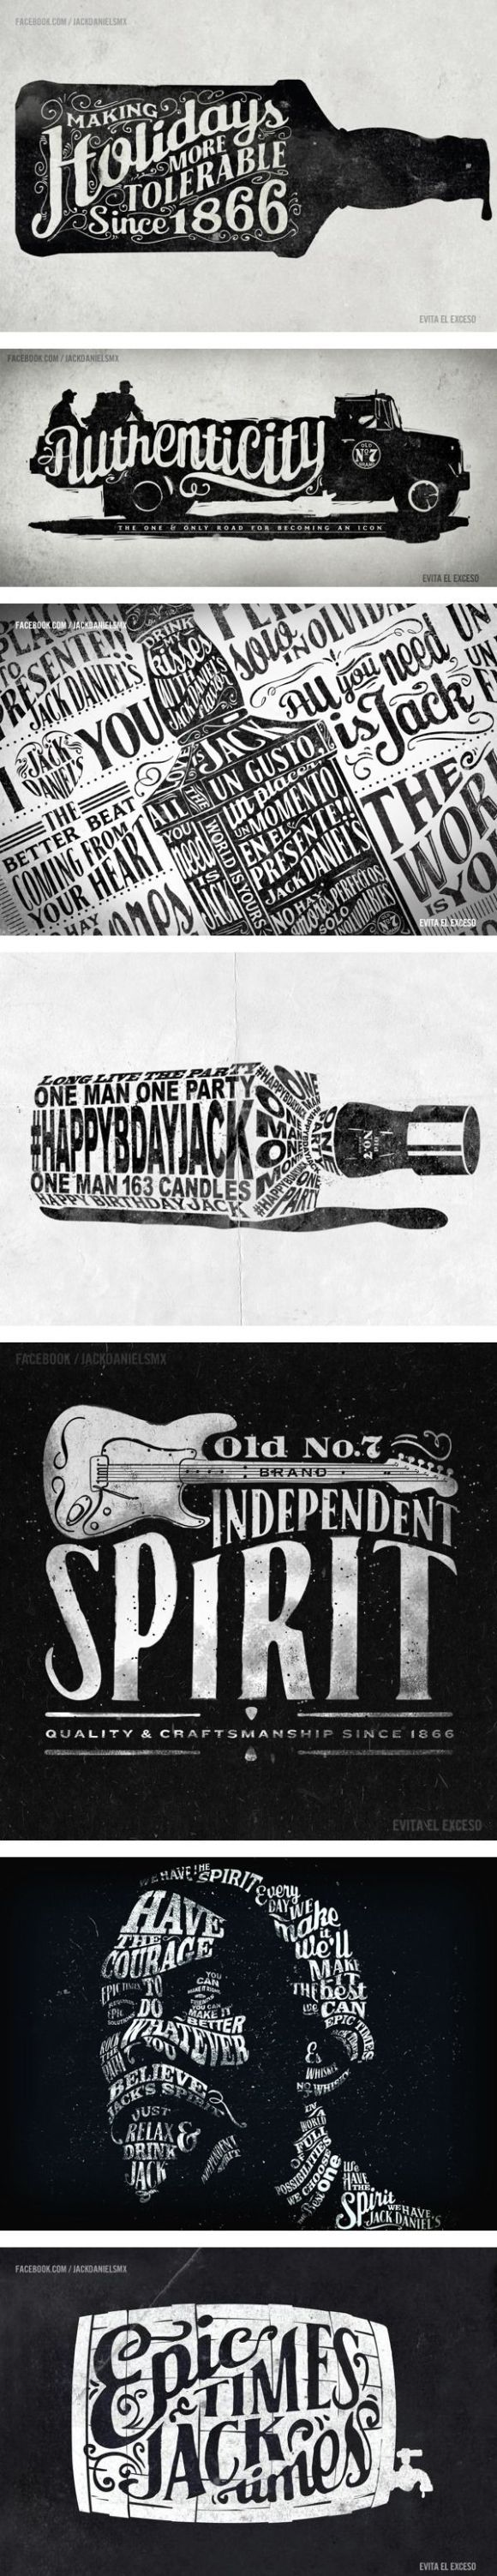 22 Inspirational Examples of Vintage Typography - B/I/D